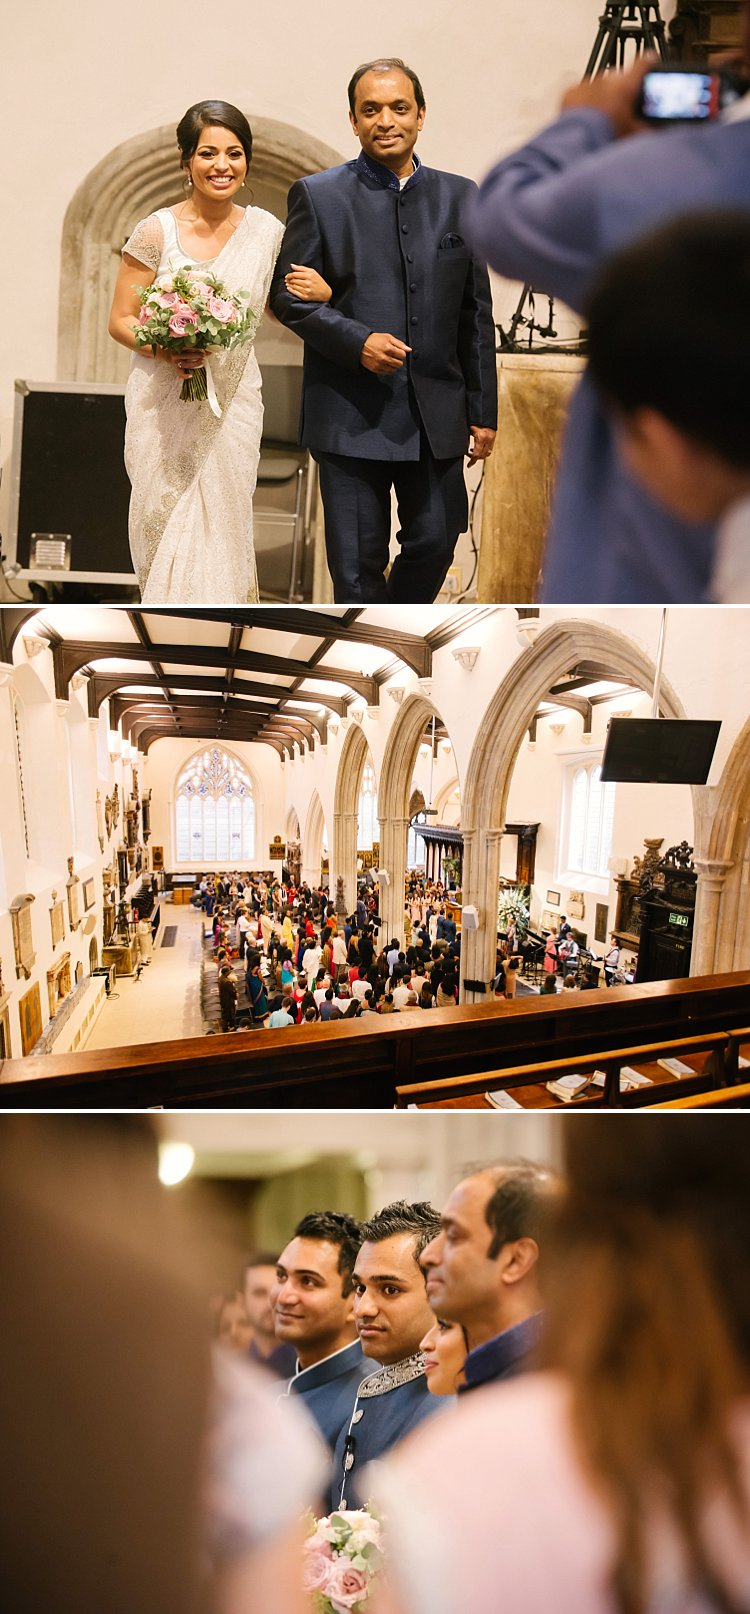 London wedding banqueting house royal palace photographer indian multi cultural st helens bishopsgate 0019